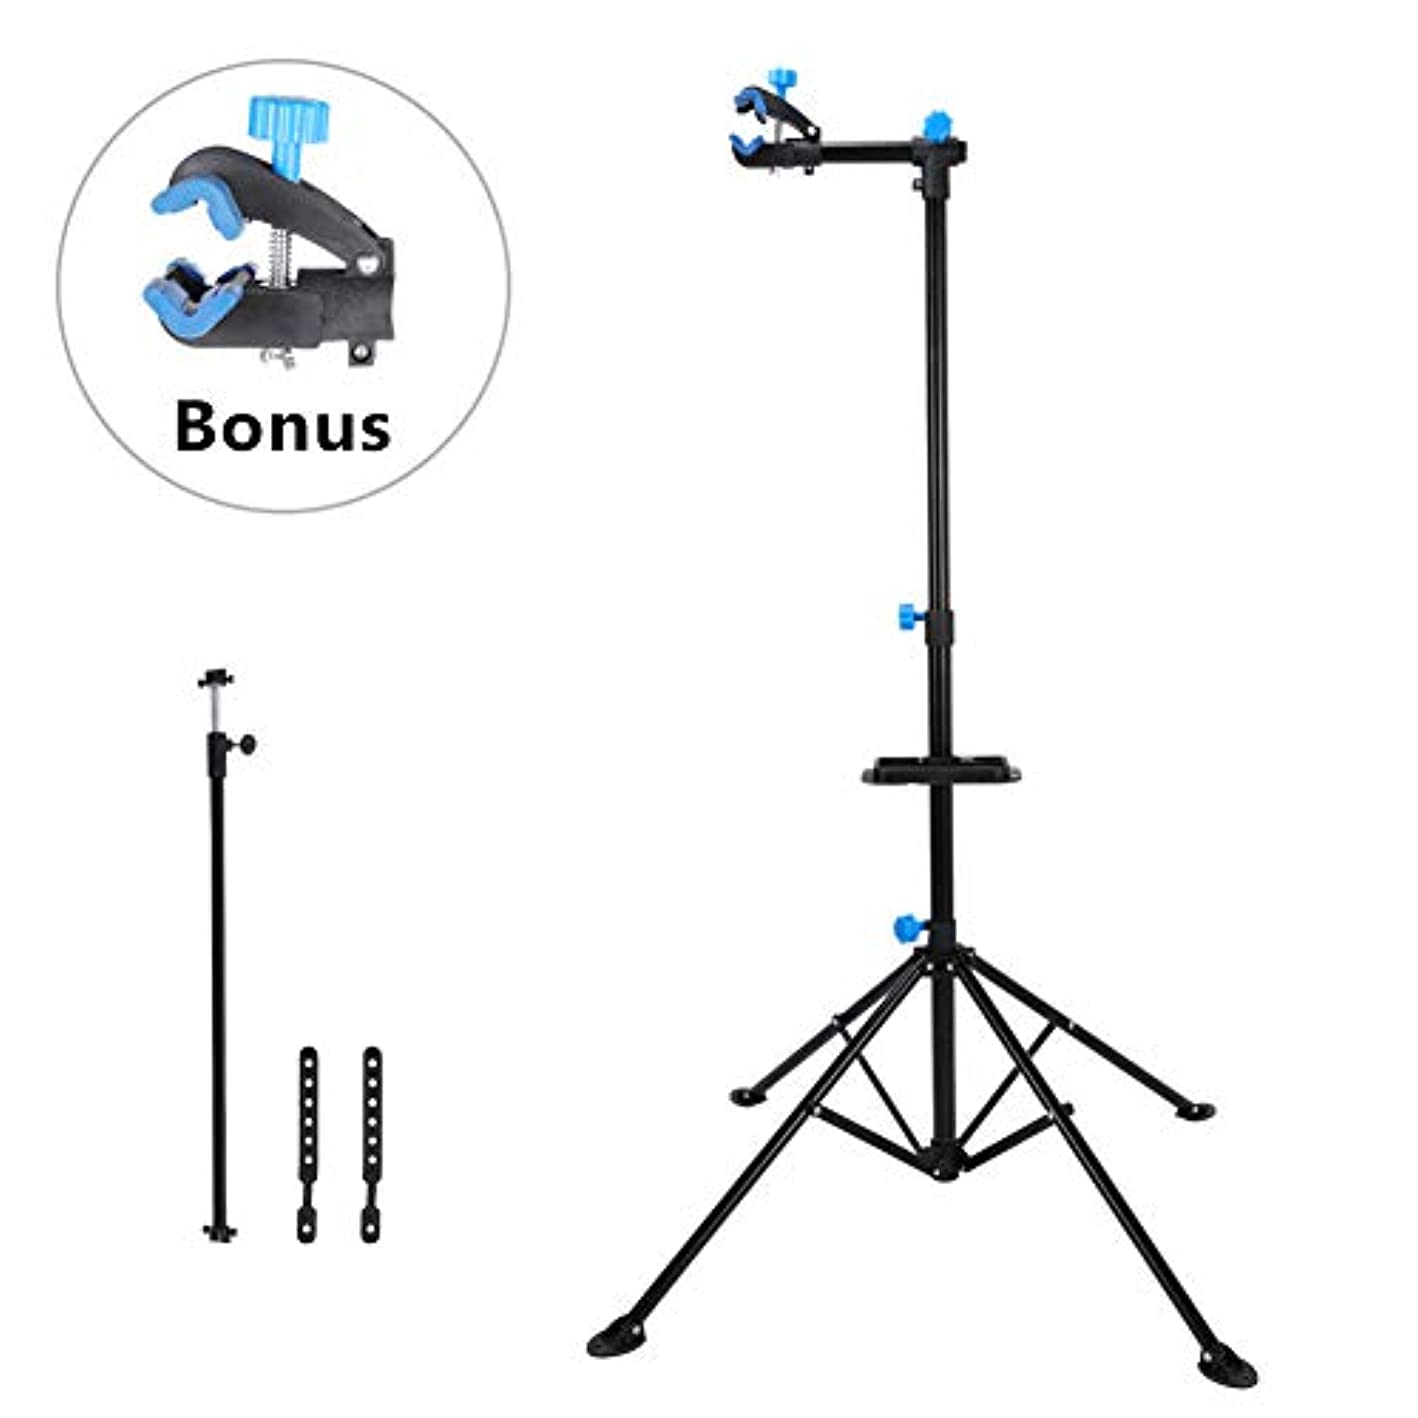 Estink Bike Repair Stand, Bicycle Repair Rack Foldable Mechanic Workstand with Tool Tray and Feet Pad for Bicycle Repair